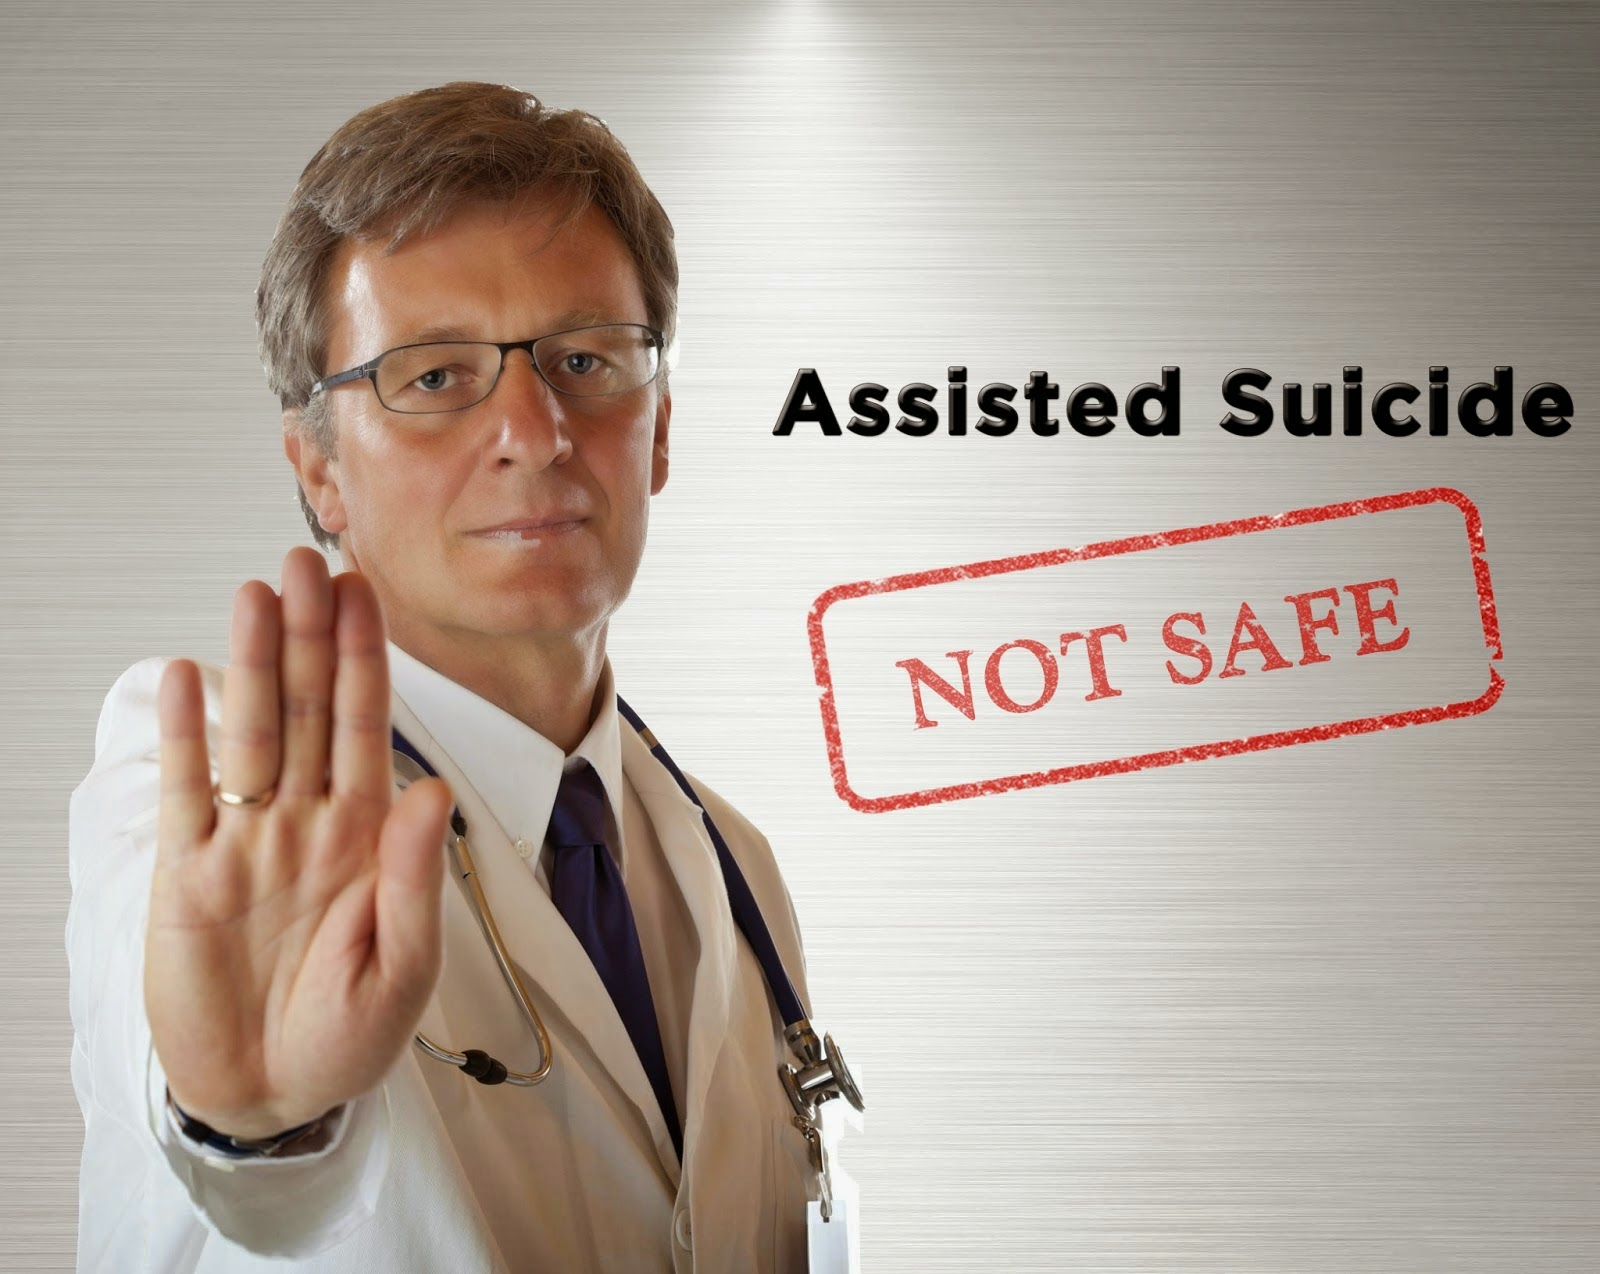 Should an incurably-ill patient be able to commit physician-assisted suicide?